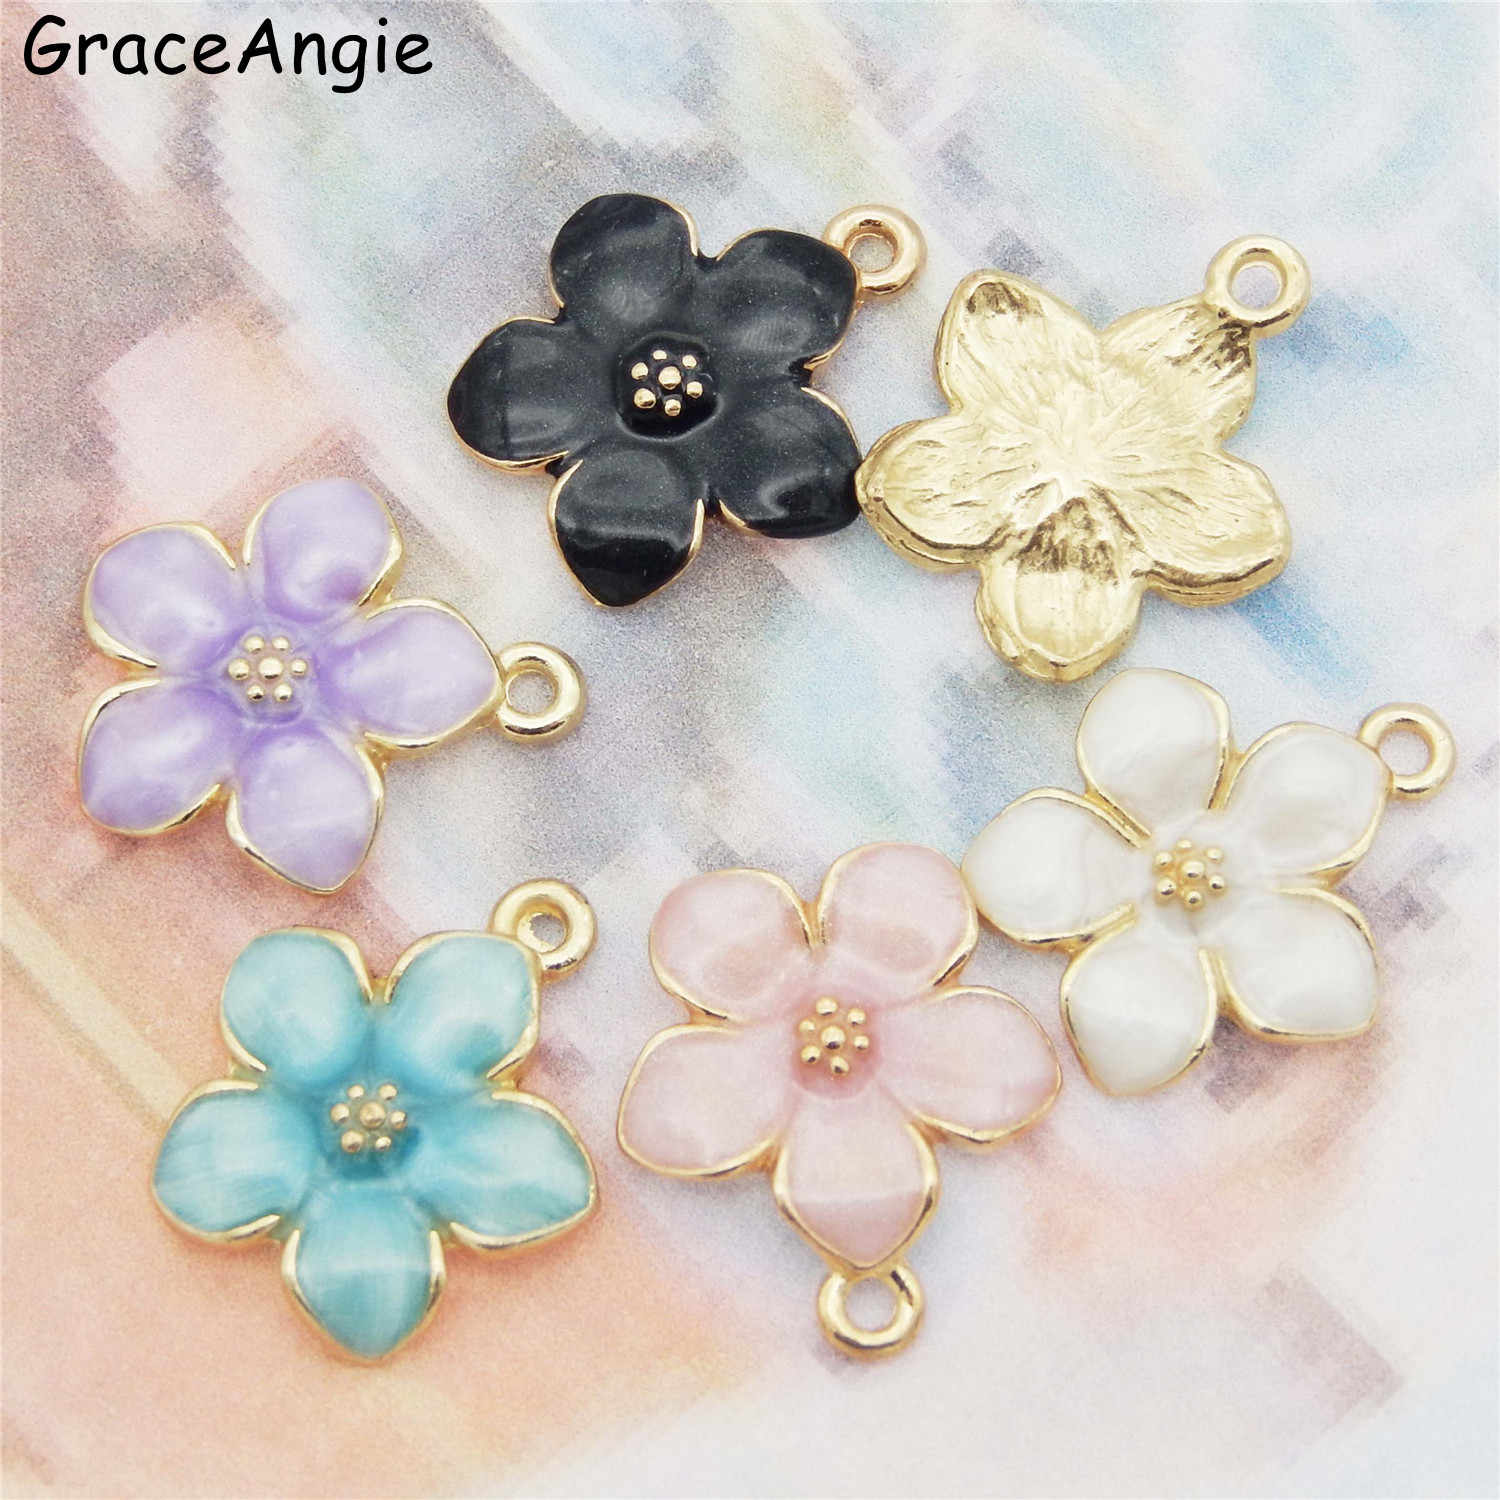 15PCS MIX Enamel Flower Charms For Earrings Pendants Necklace Jewelry Findings Handmade Craft DIY Bangle Bracelet Dec 5 colors